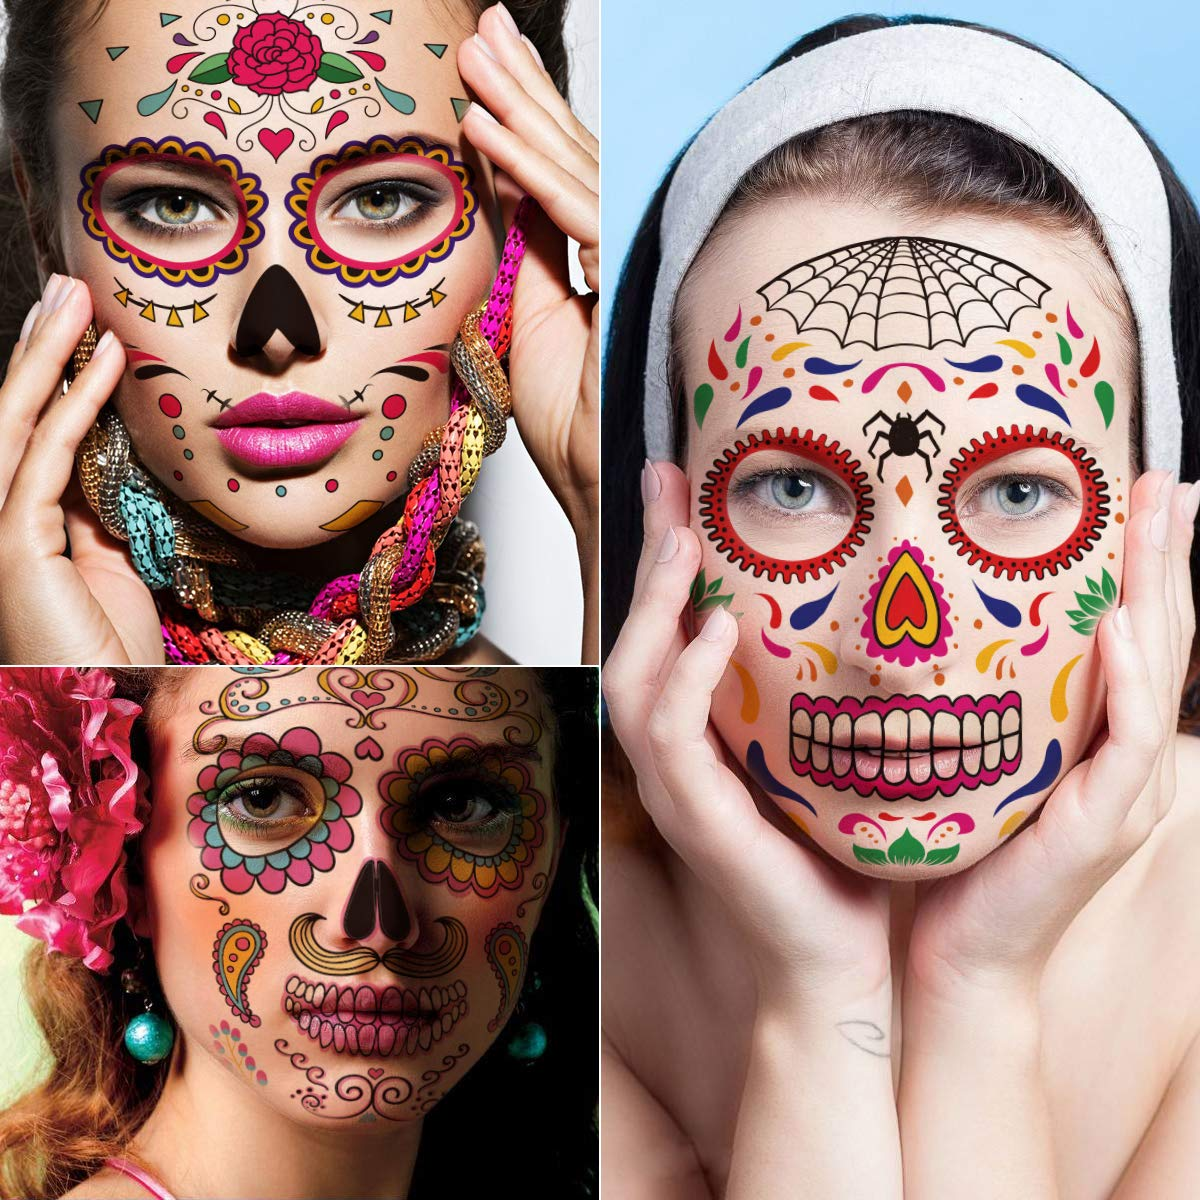 Kotbs 9 Sheets Day of the Dead Skeleton Face Tattoo, Glitter Red Roses Halloween Temporary Tattoos for Men Women Makeup Tattoo Sticker